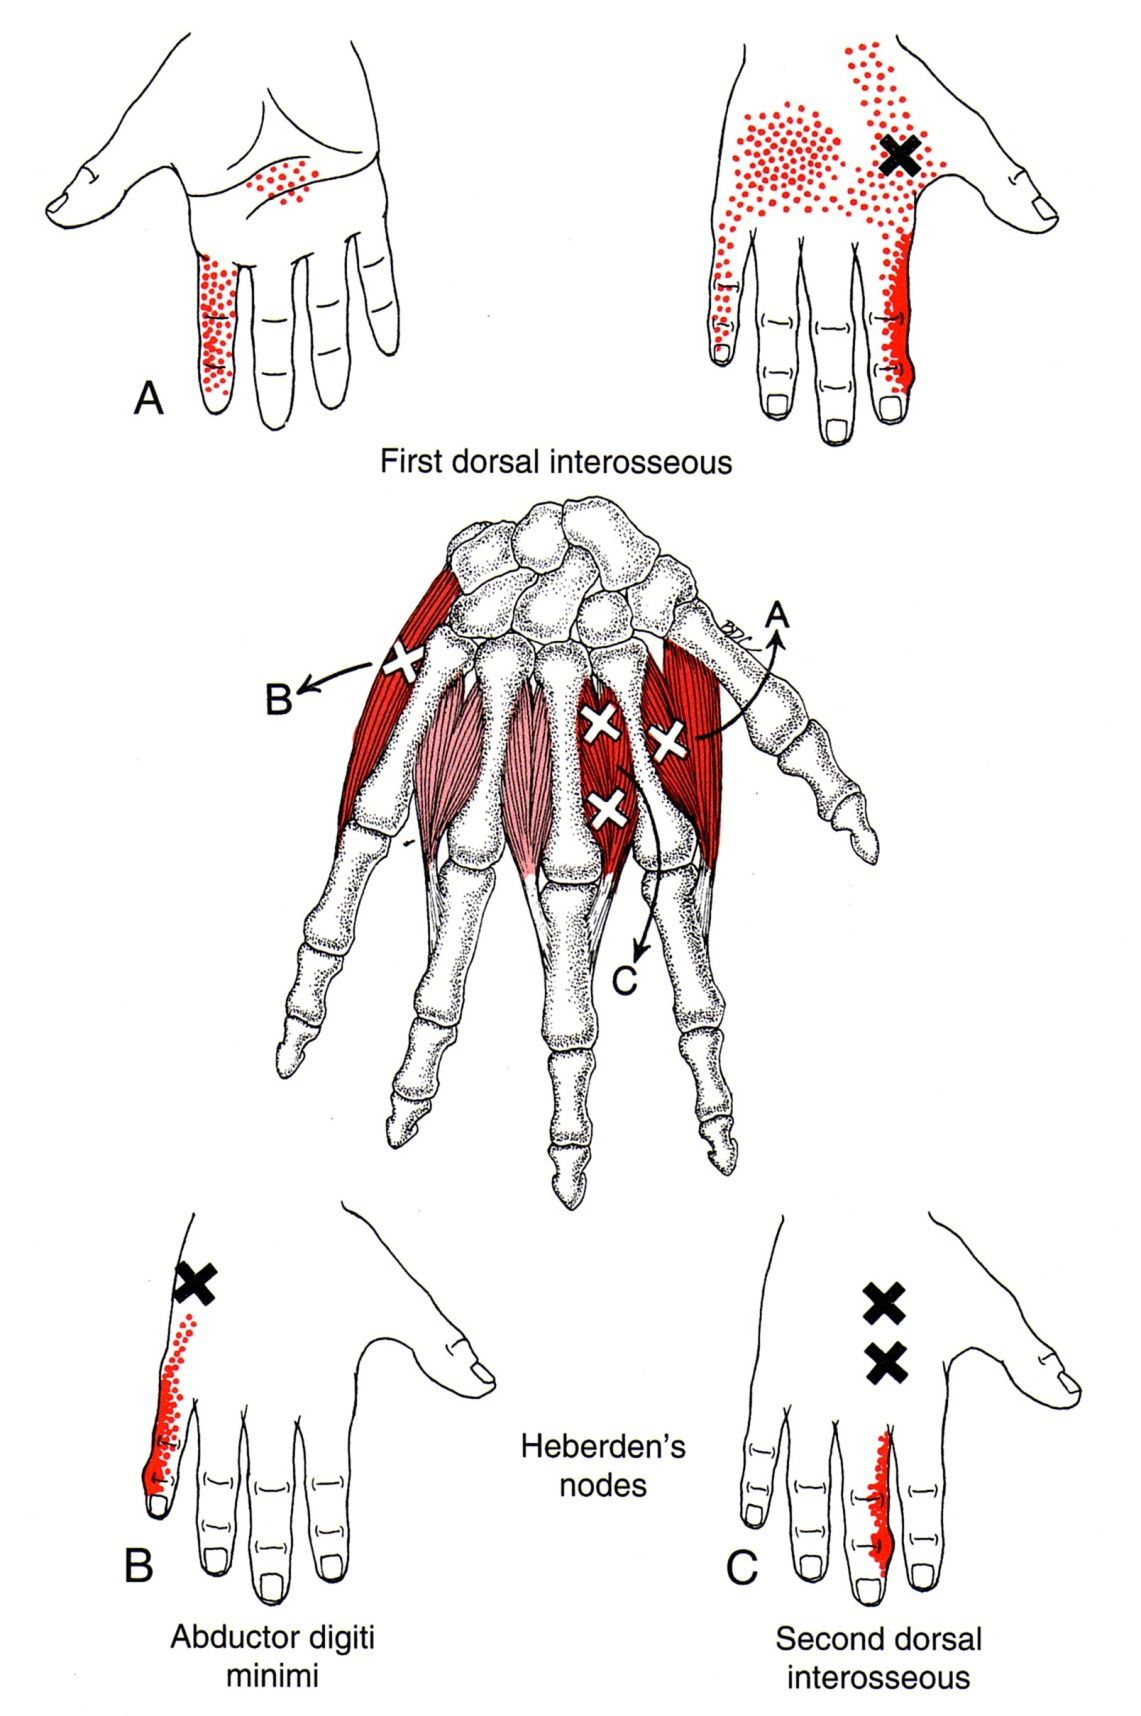 First dorsal interosseus the trigger point referred pain guide related trigger point and referred pain diagrams for thumb radial hand pain relevant primary and secondary muscles are shown pooptronica